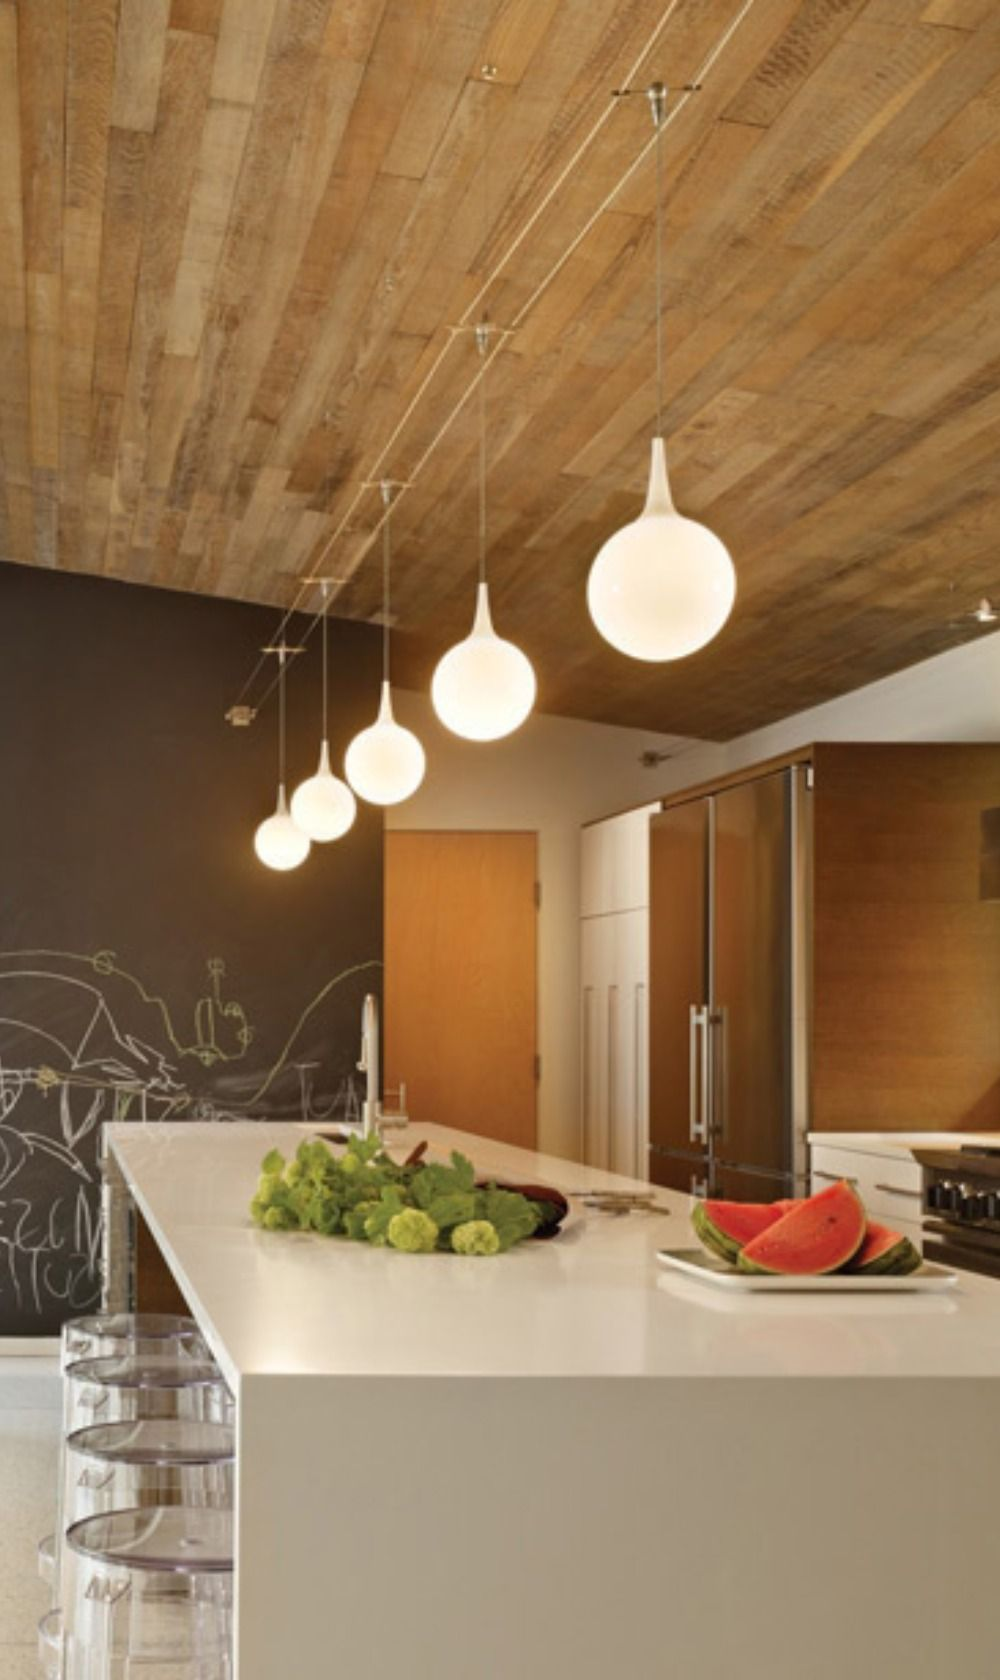 Pele Monopoint Pendant By Tech Lighting 700mppelws In 2021 Wooden Ceilings Wooden Ceiling Design Contemporary Interior Design